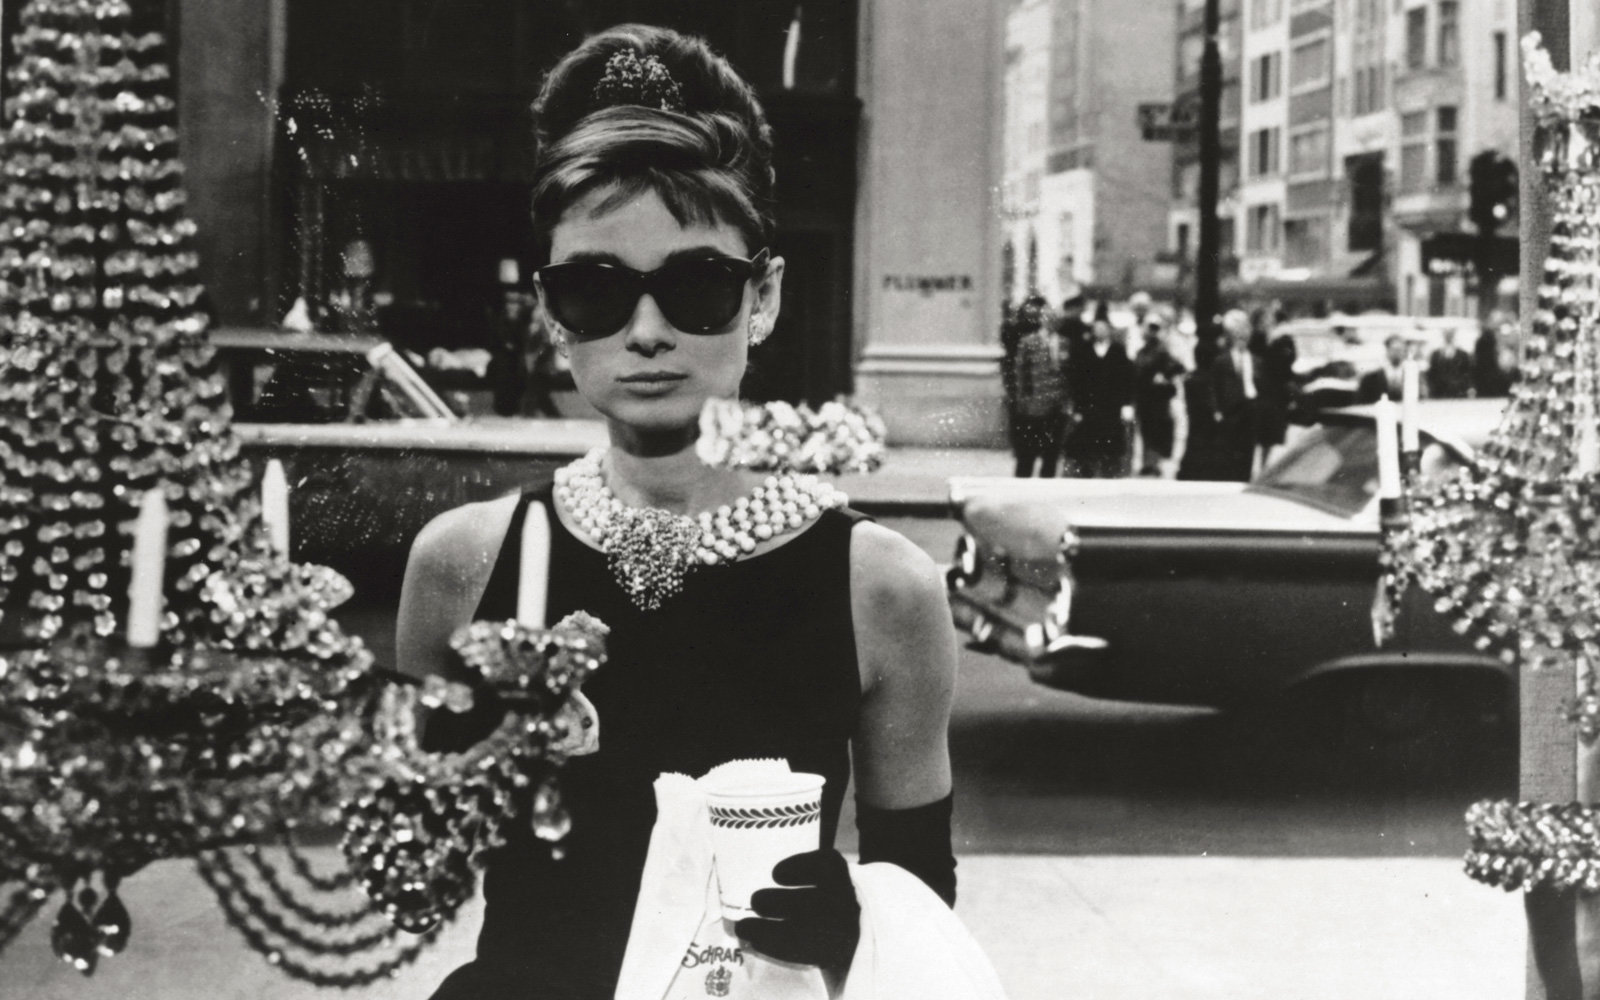 Breakfast at Tiffany's: NY  jewellery store opens cafe